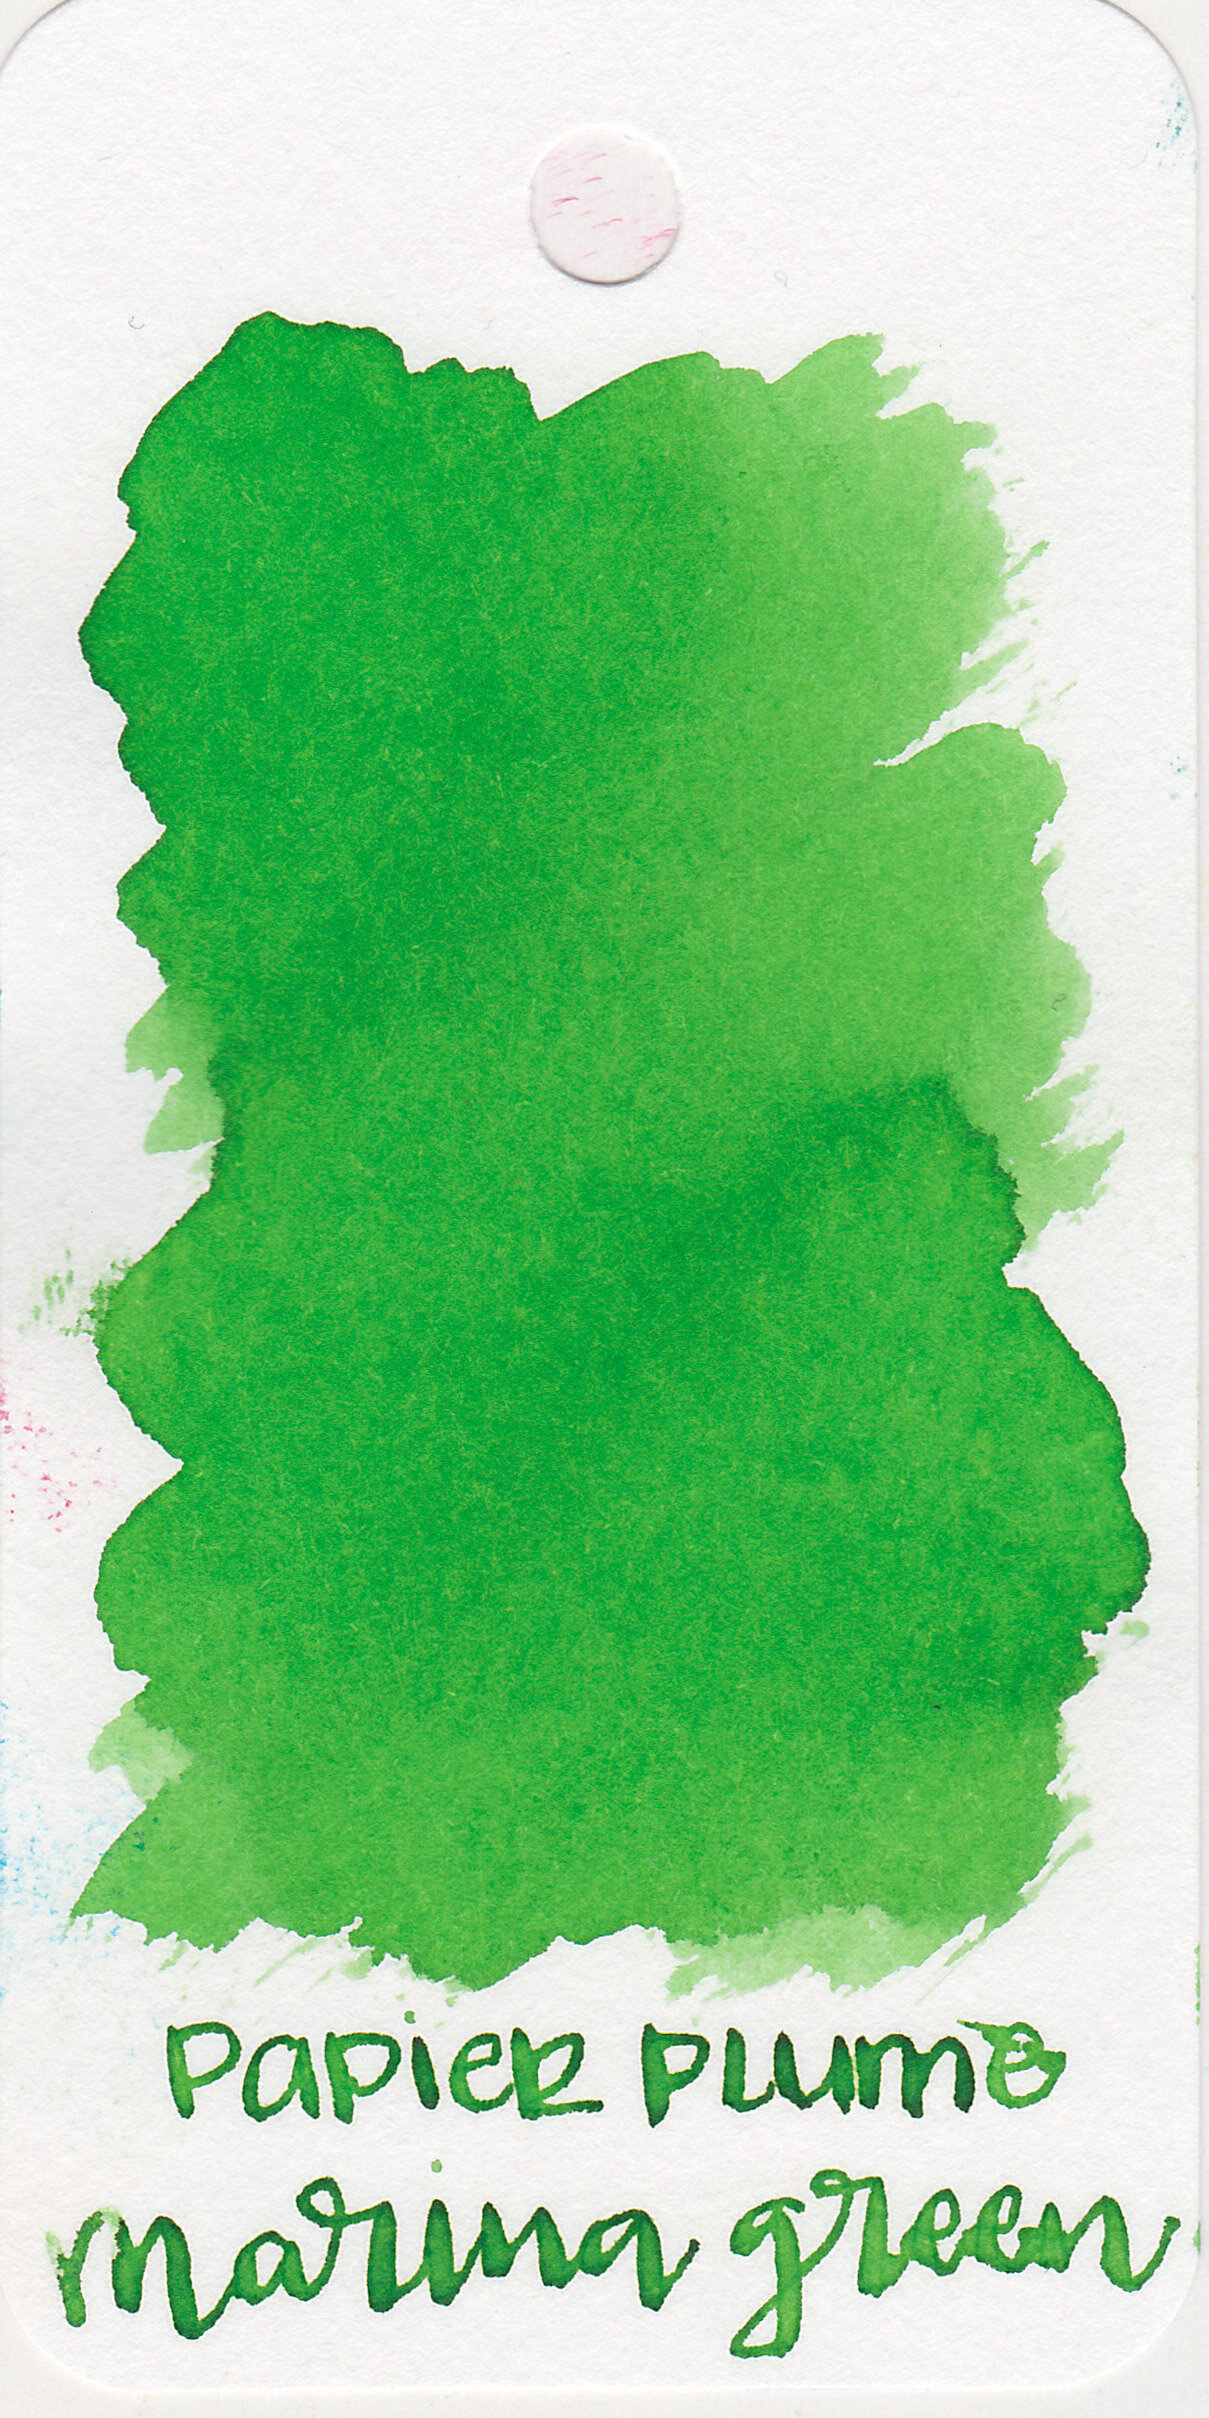 The color: - Marina Green is a bright medium green with some shading. I would almost call it a lime green on this Col-o-ring paper.